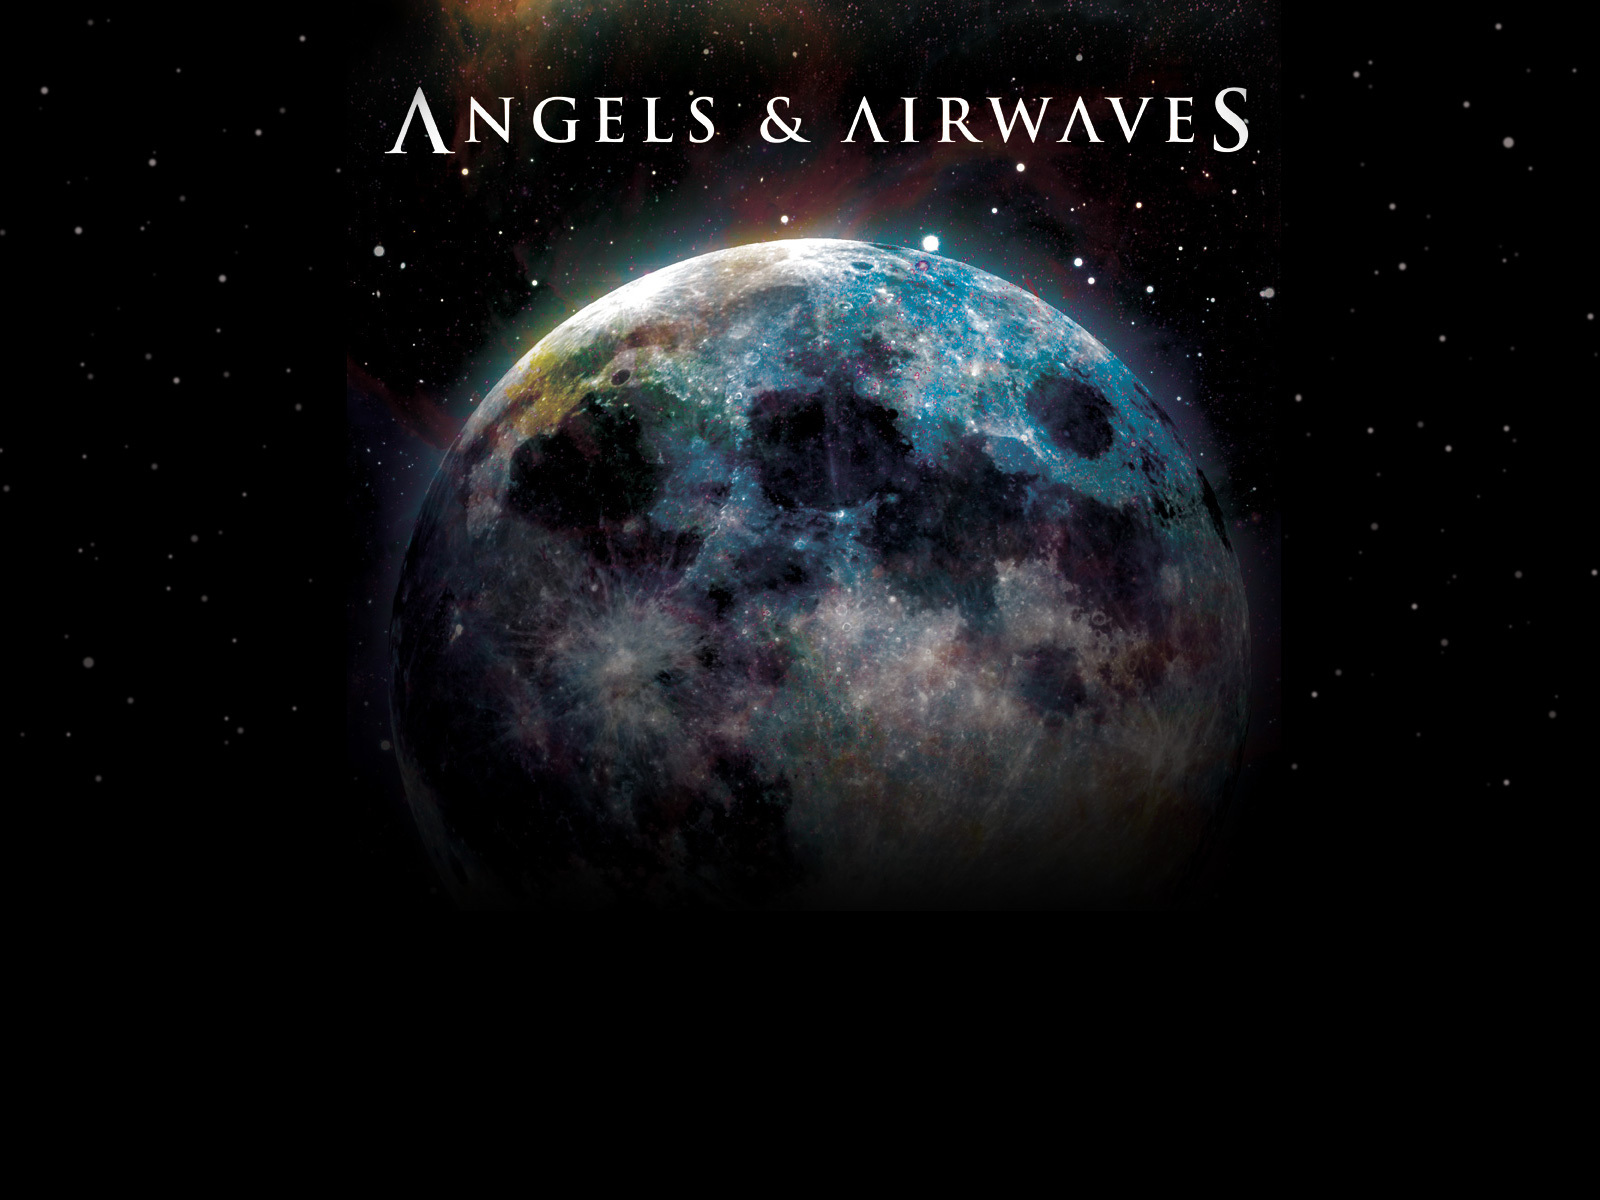 Angels+and+airwaves+logo